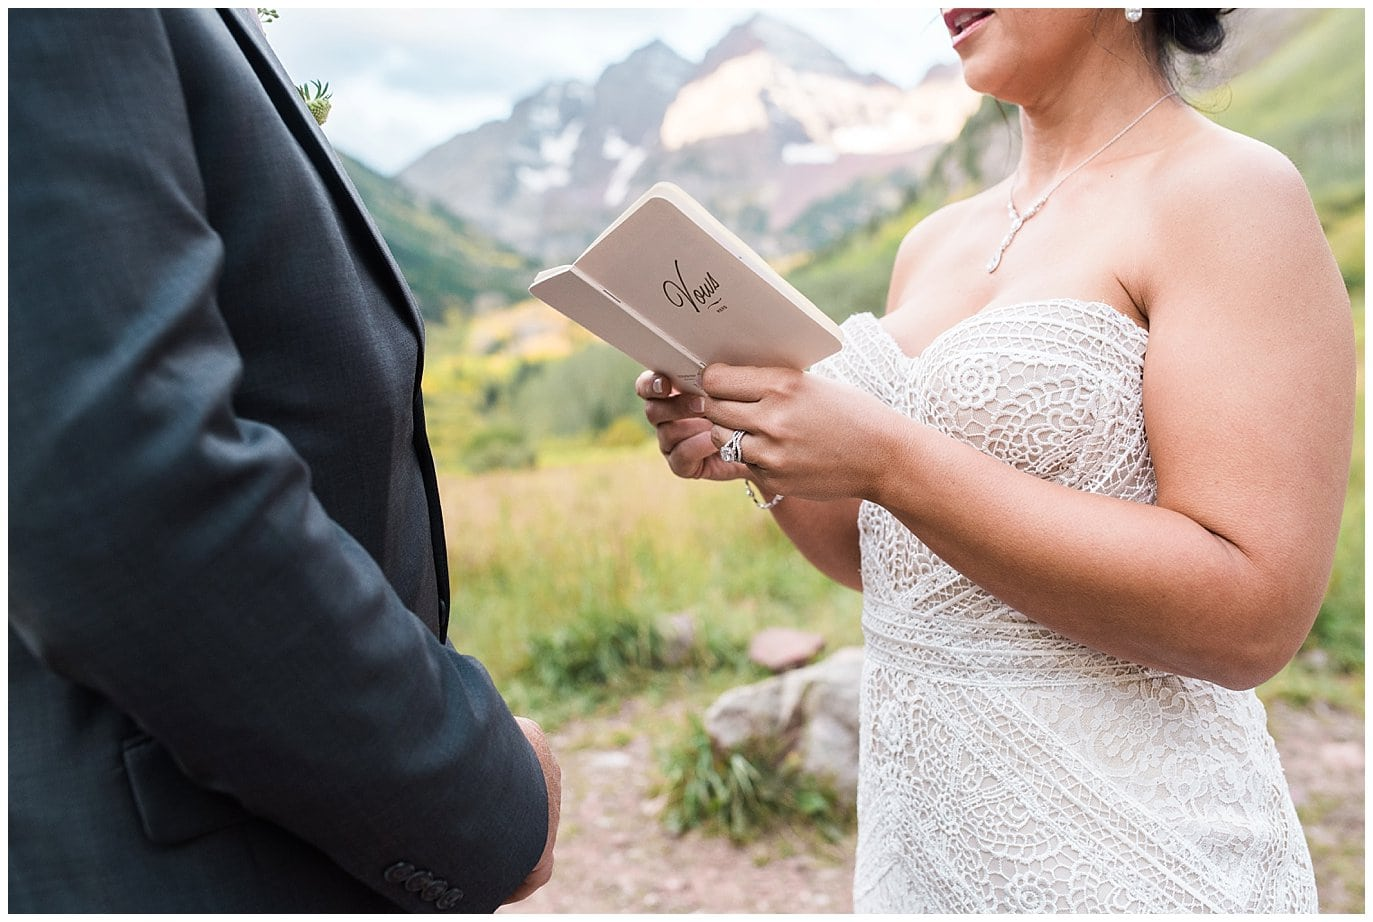 saying personal vows during elopement photo